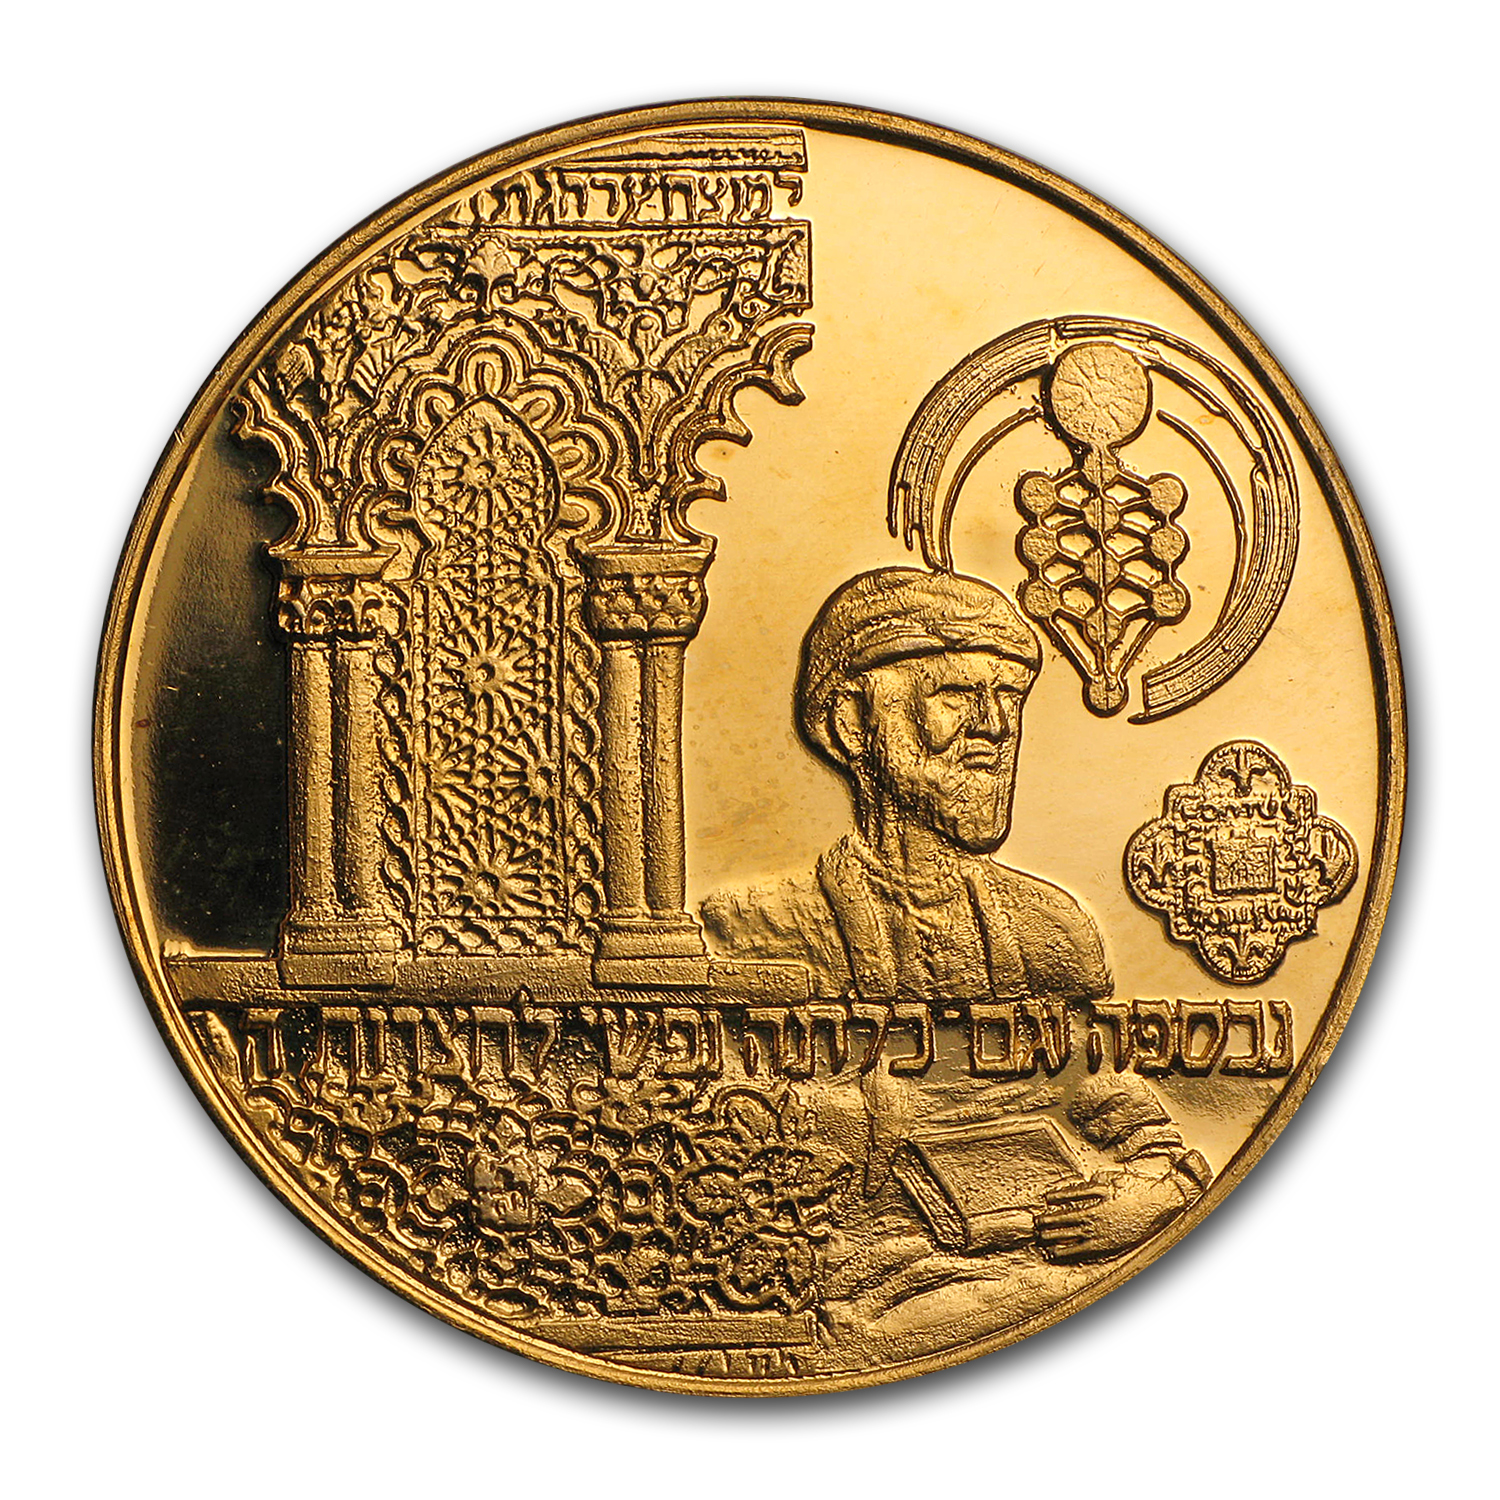 1992 Israel Gold Medal Anniversary of the Expulsion from Spain